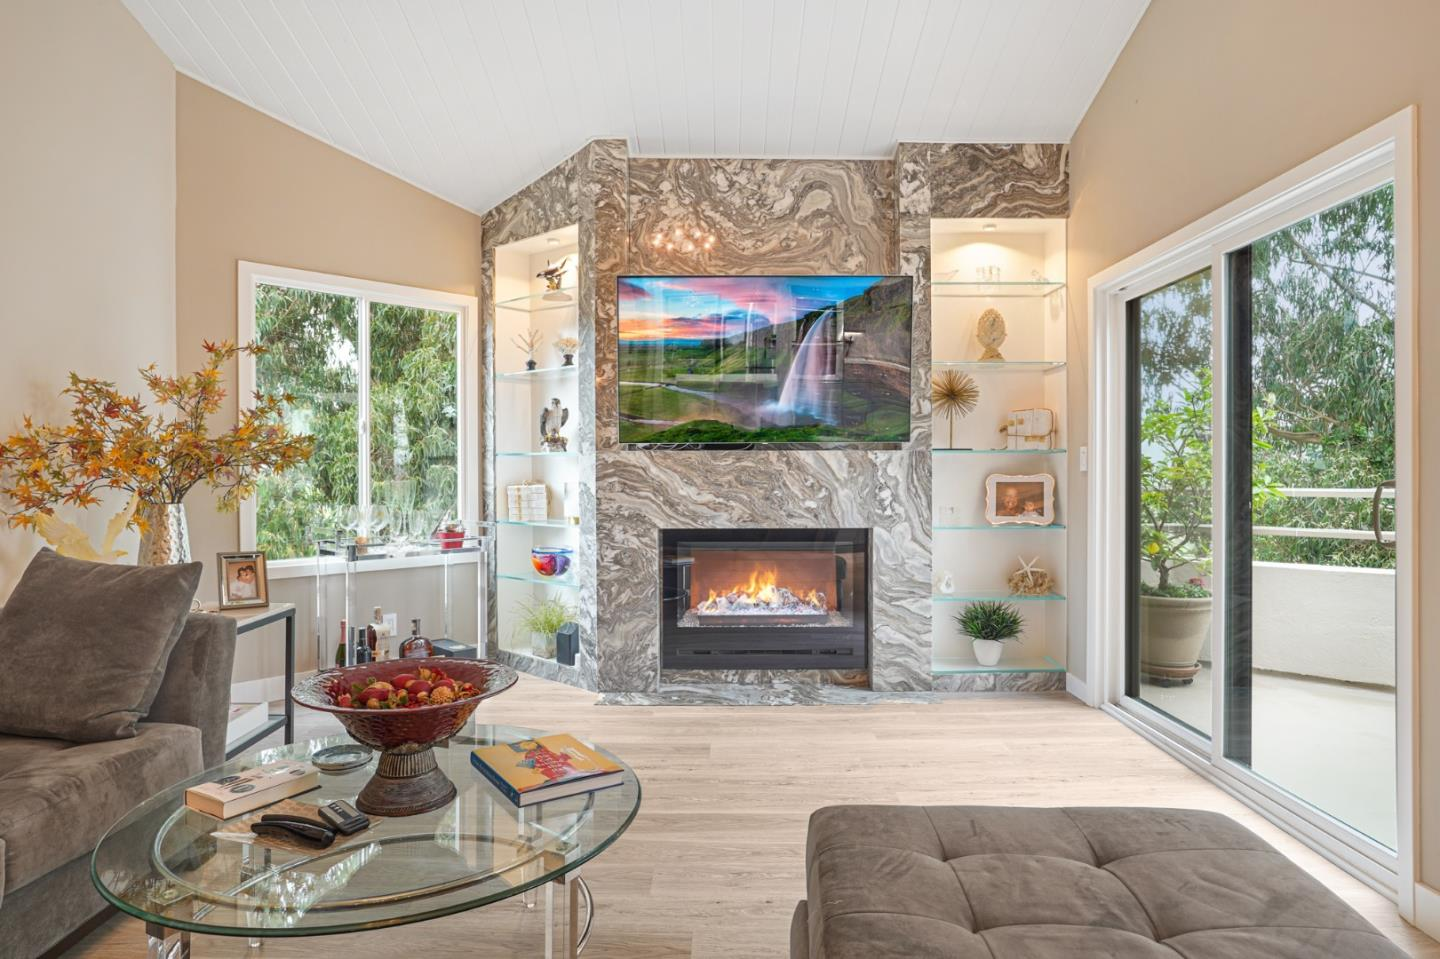 """This stunning totally """"remodeled"""" penthouse style condo has it all! High ceilings tons of sunlight, large windows, custom marble fireplace, hand selected floors all with a touch of modern perfection! No details were sparred in this newly renovated master piece. Dream chef's kitchen with stainless steel appliances and solid countertops and all the best. Showcase european bathrooms with every detail imaginable. Privacy galore magnificient views of SF Golf course and city lights, large veranda for outdoor entertainment and peaceful setting. Located across from Lake Merced, walking distance to shopping and private gated security guarded entry..secure parking, elevator .swimming pool and tennis courts included. No property on market in San Francisco offers this value and quality living at this price. Serious buyers ONLY..."""